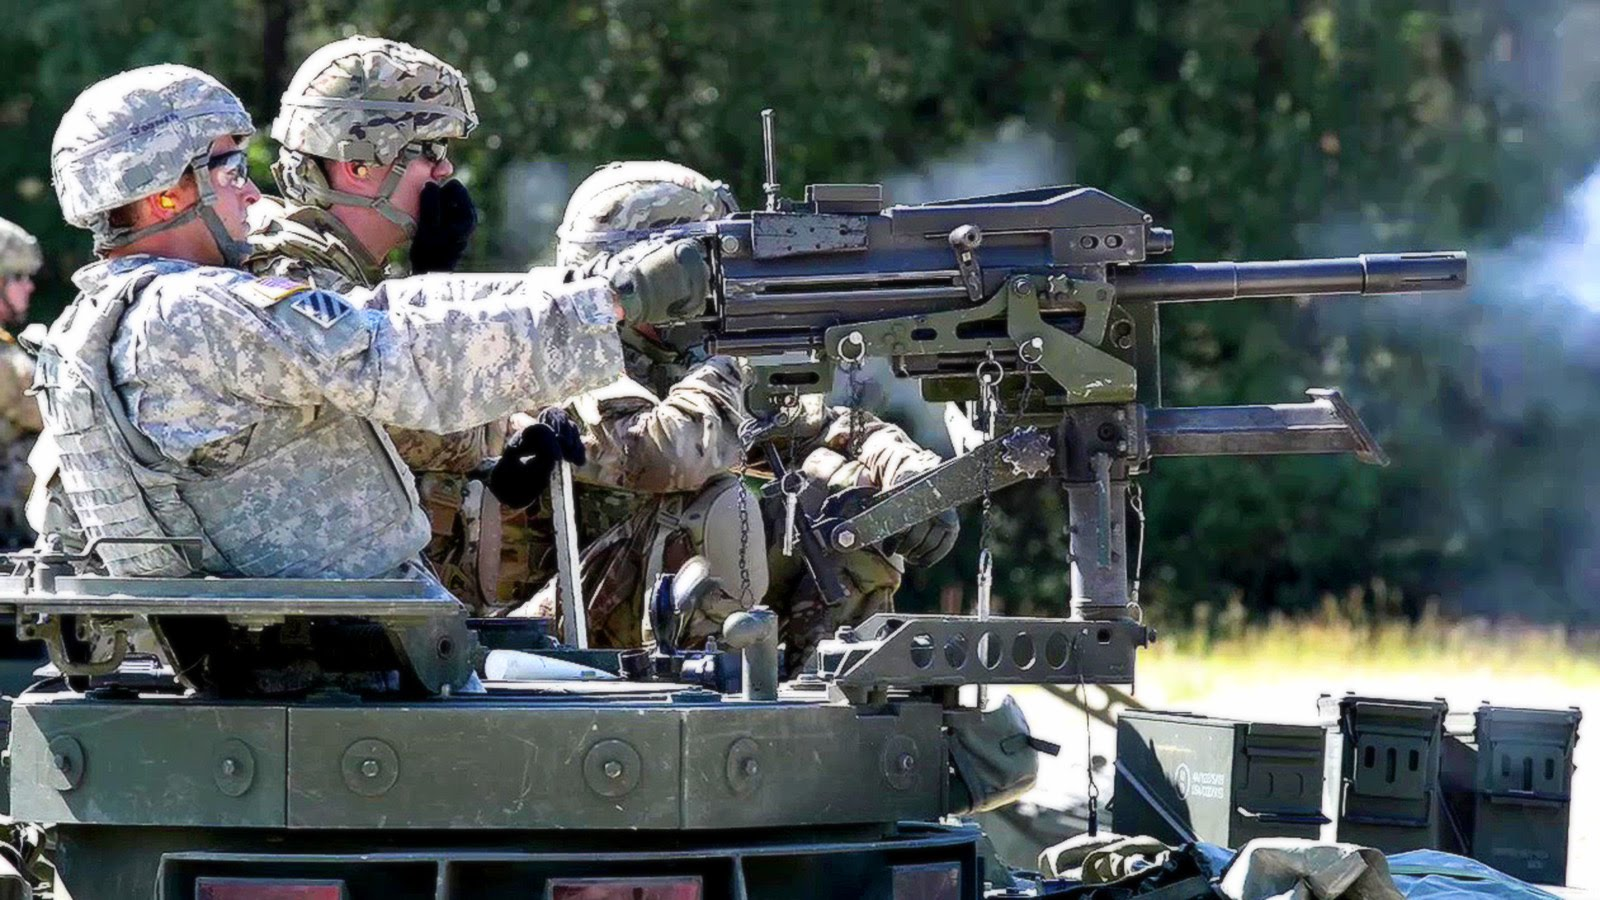 Mk 19 Grenade Launcher Gunnery Exercise  – US Army